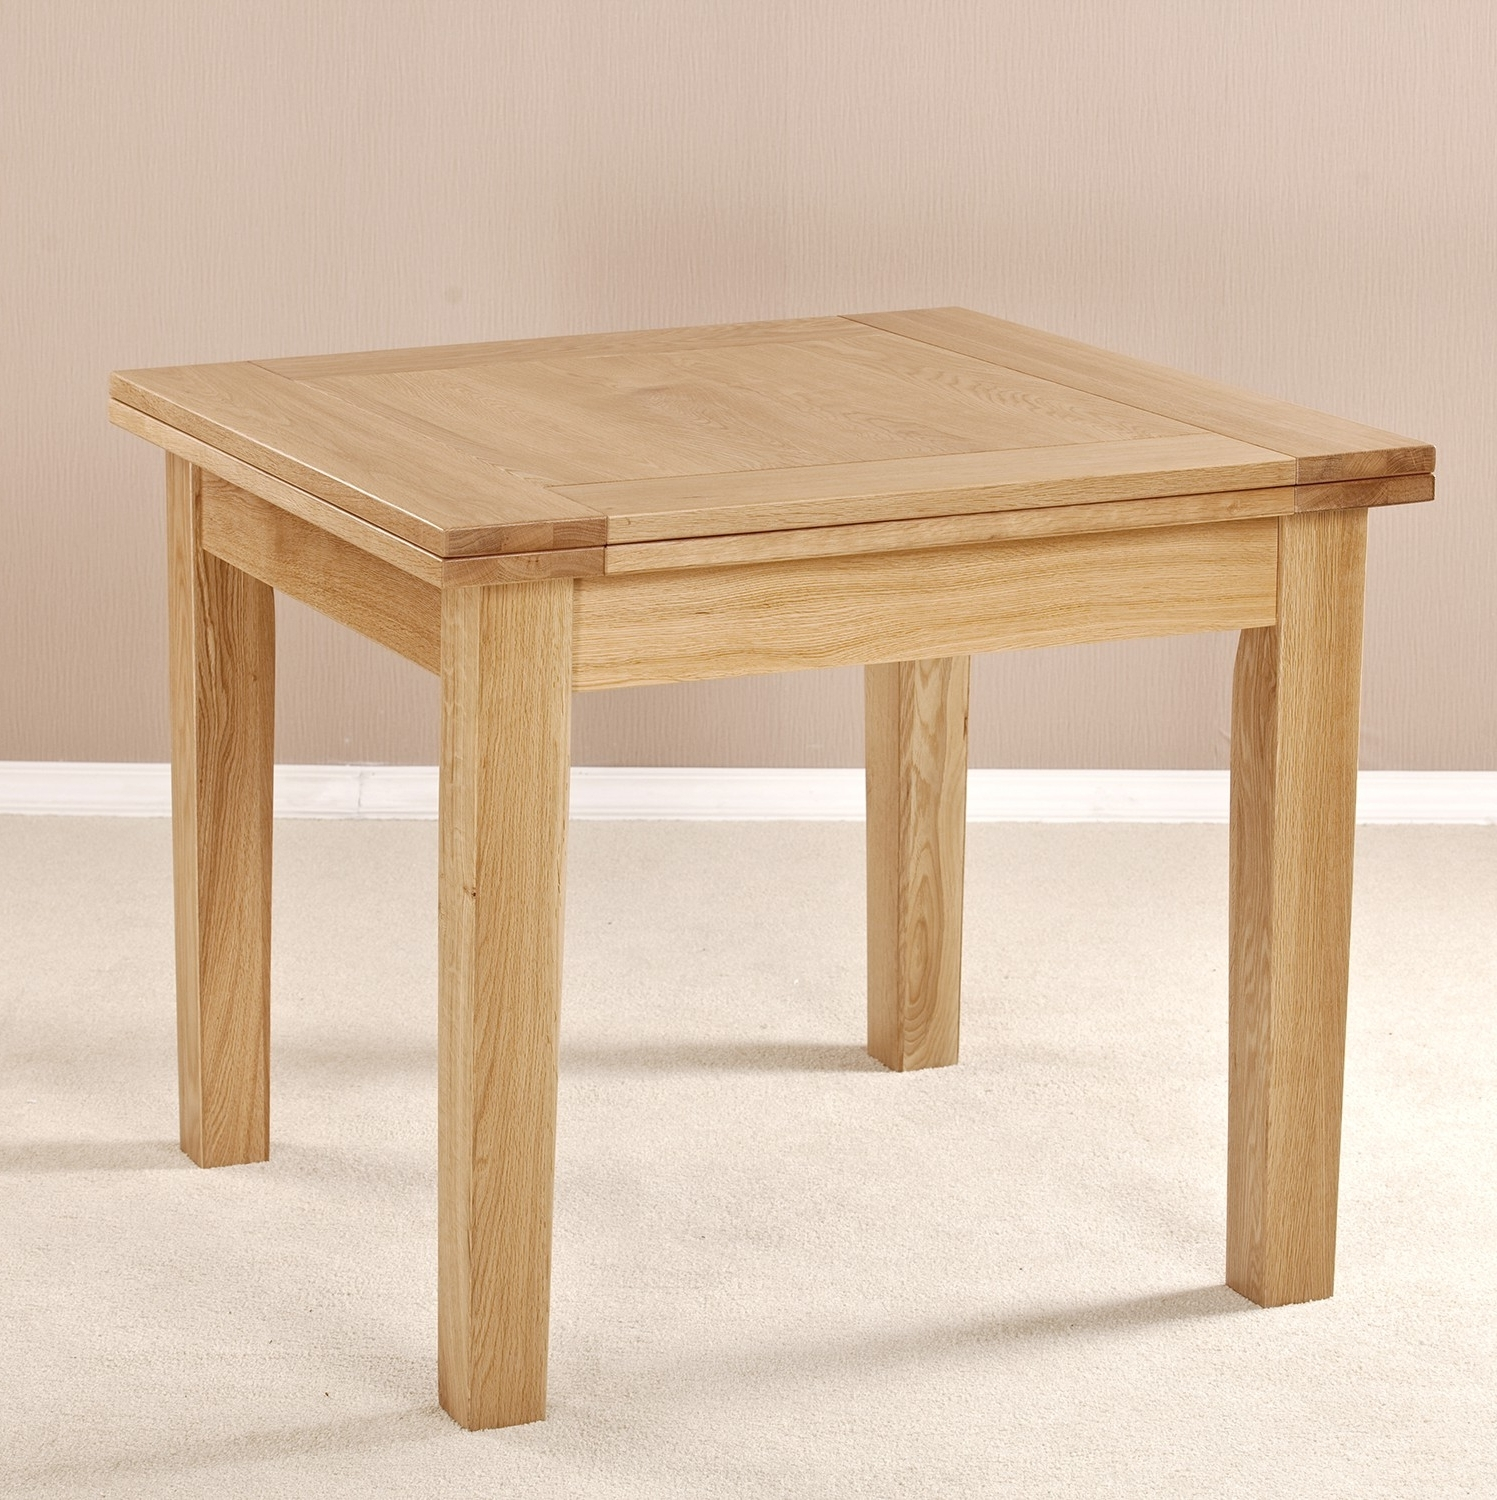 Square Solid Oak Wood Flip Top Extendable Dining Table Design With In Well Known Extendable Square Dining Tables (View 7 of 25)